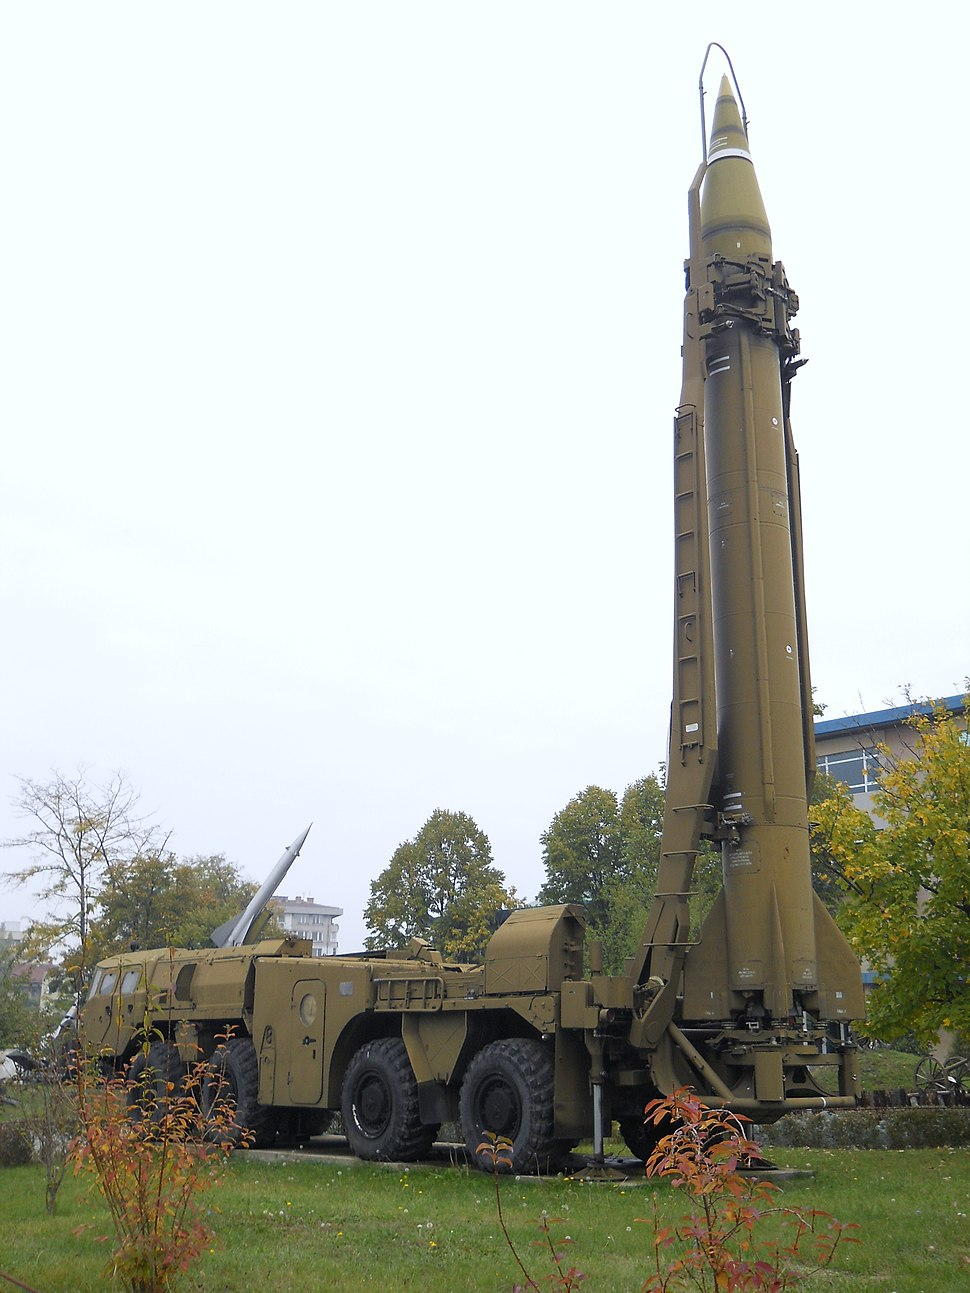 Scud missile on TEL vehicle, National Museum of Military History, Bulgaria